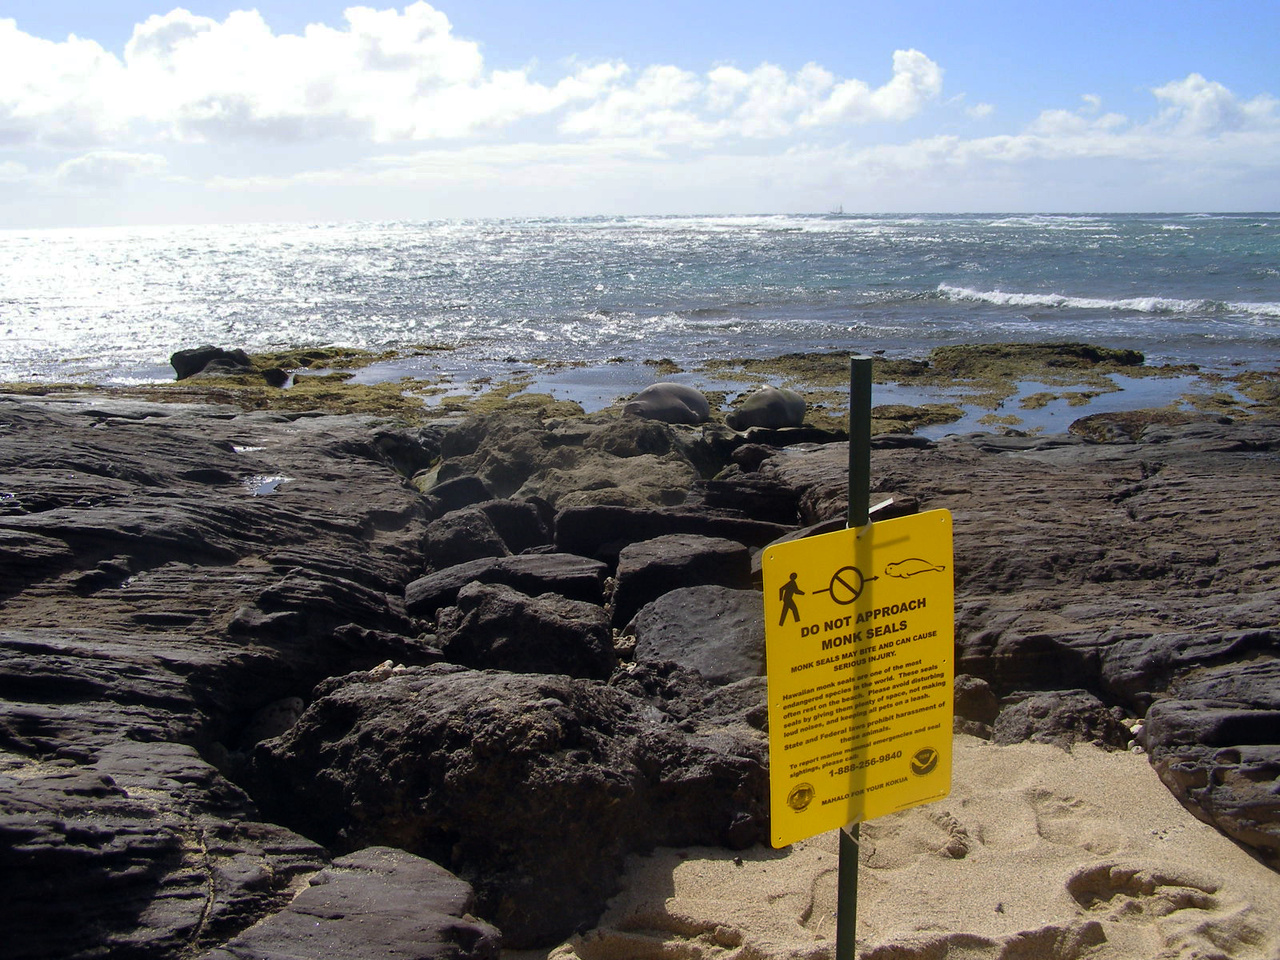 Caution sign to protect monk seals